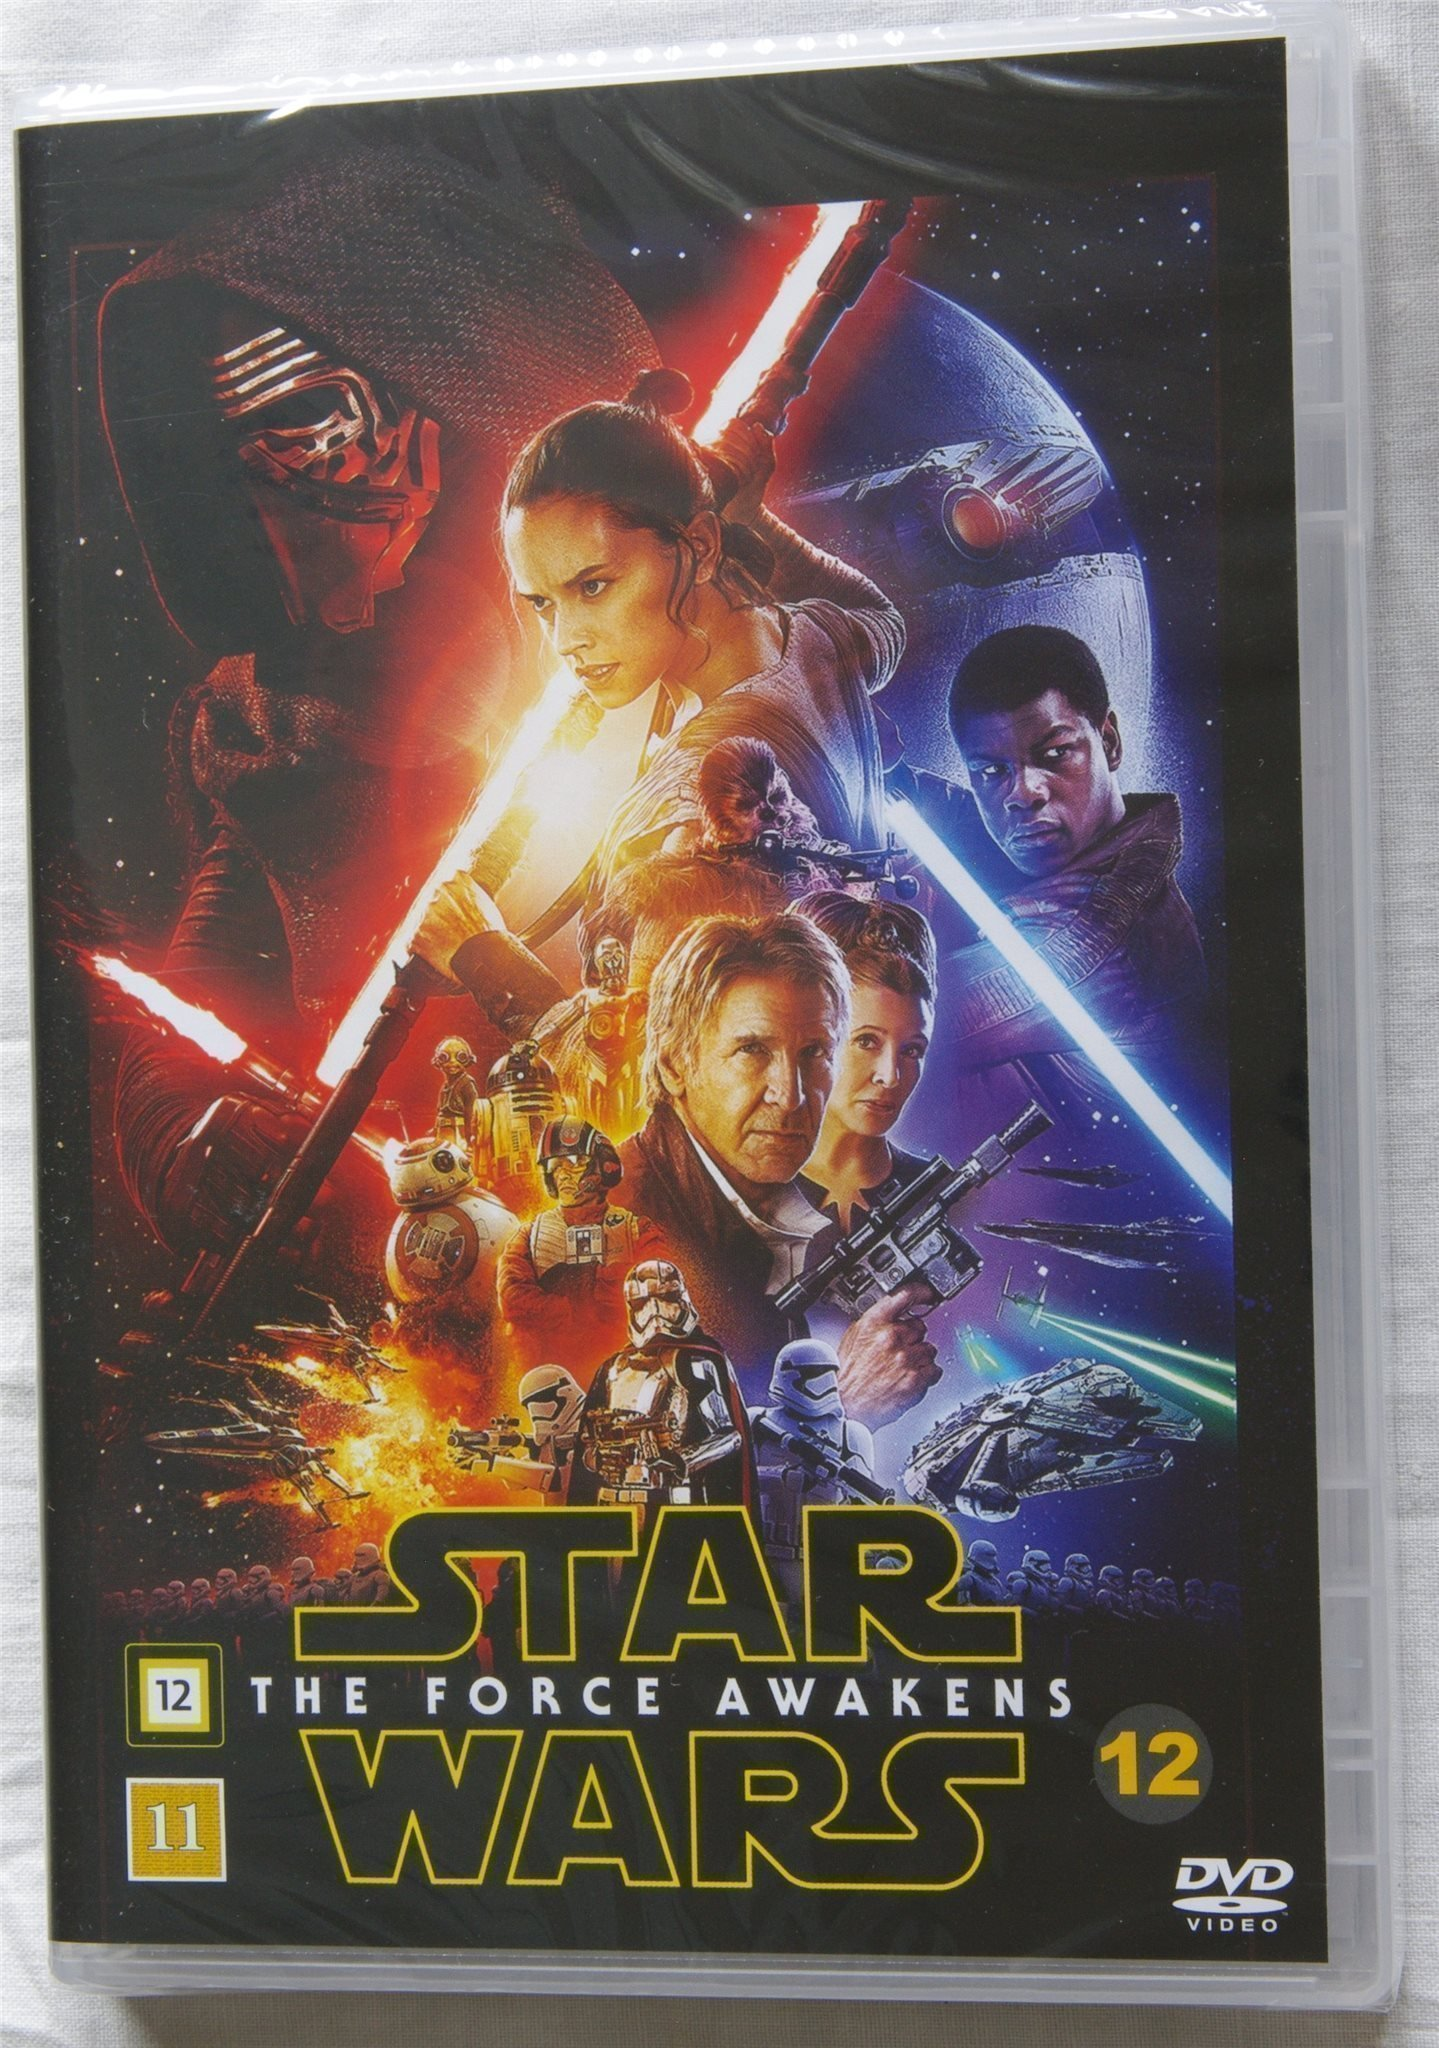 Star Wars - The force awakens, DVD, Svensk text, Oanvänd, Inplastad